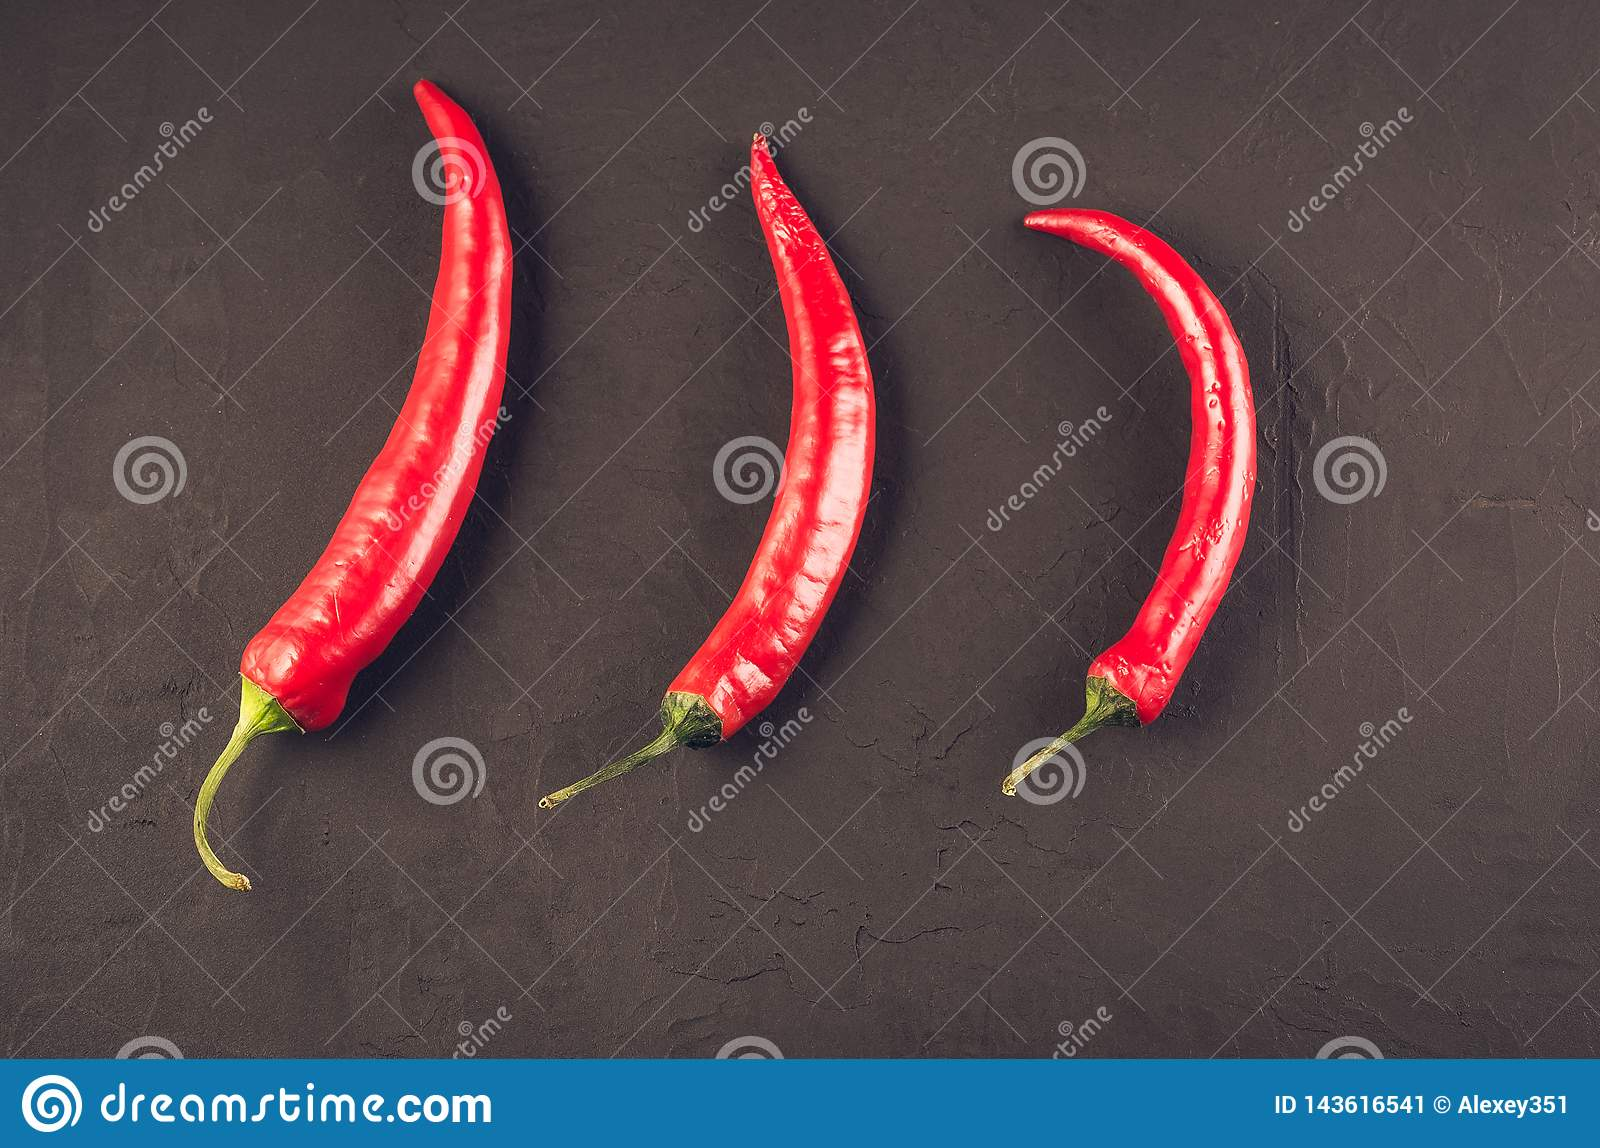 Composition of chili pepper/red hot Chile pepper on a dark stone background. Top view